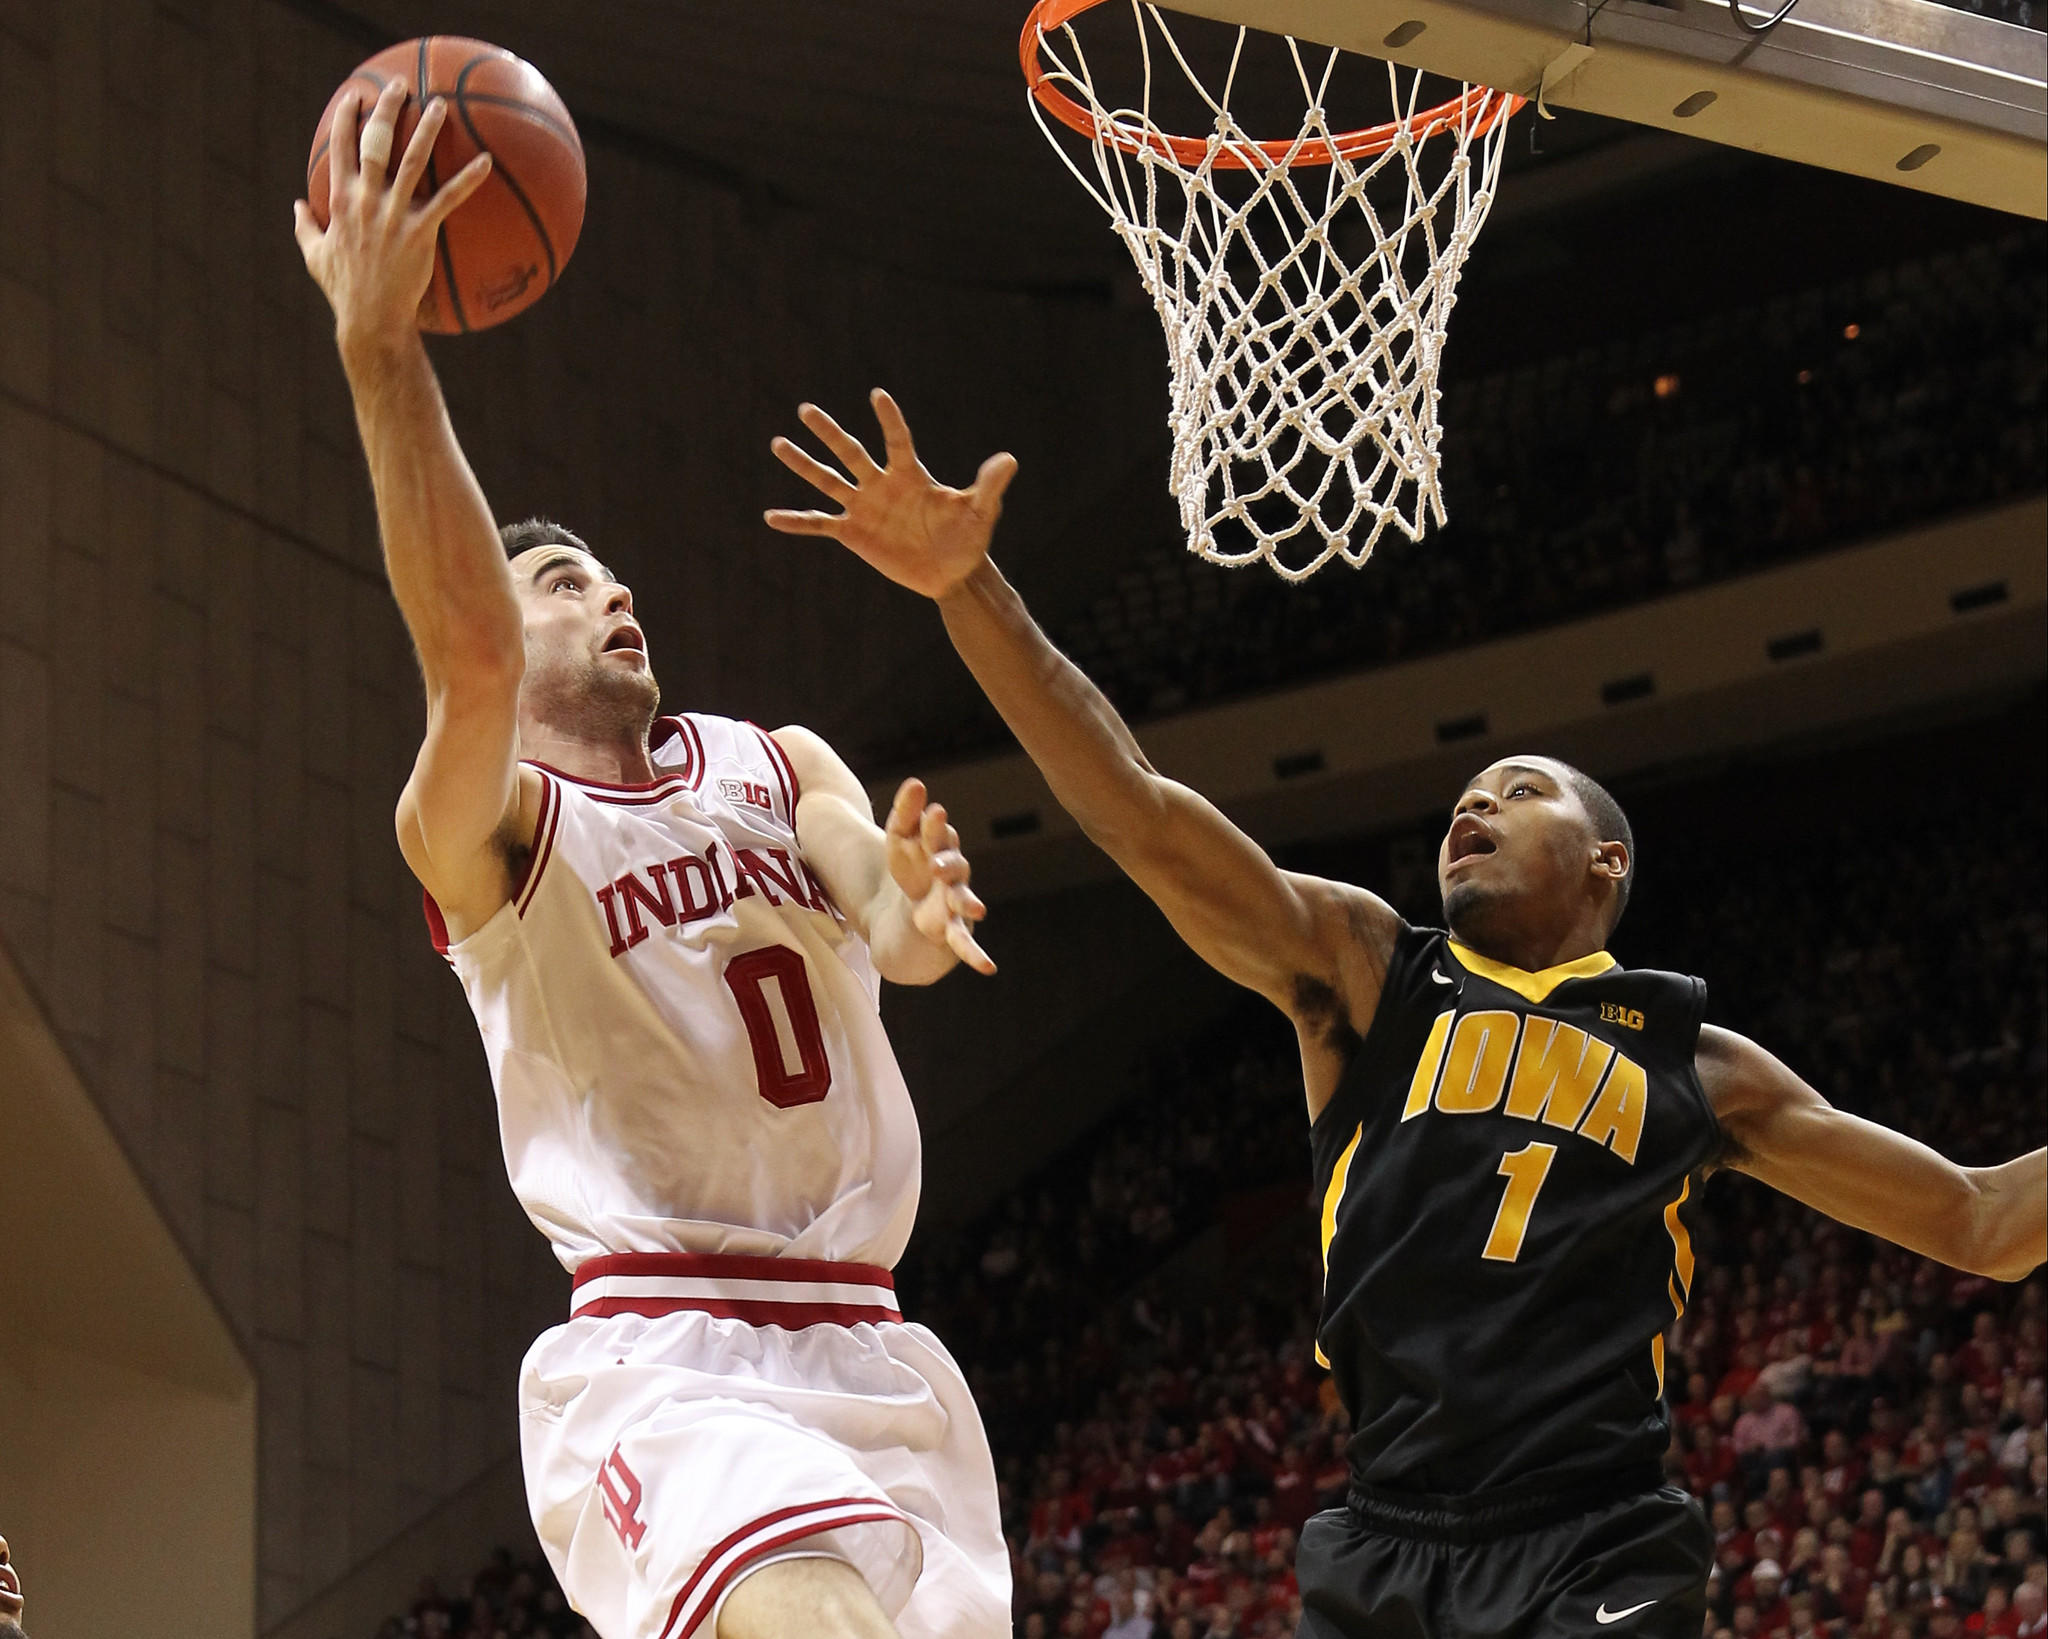 Indiana's Will Sheehey drives to the basket with Iowa's Melsahn Basabe defending during the first half at Assembly Hall.